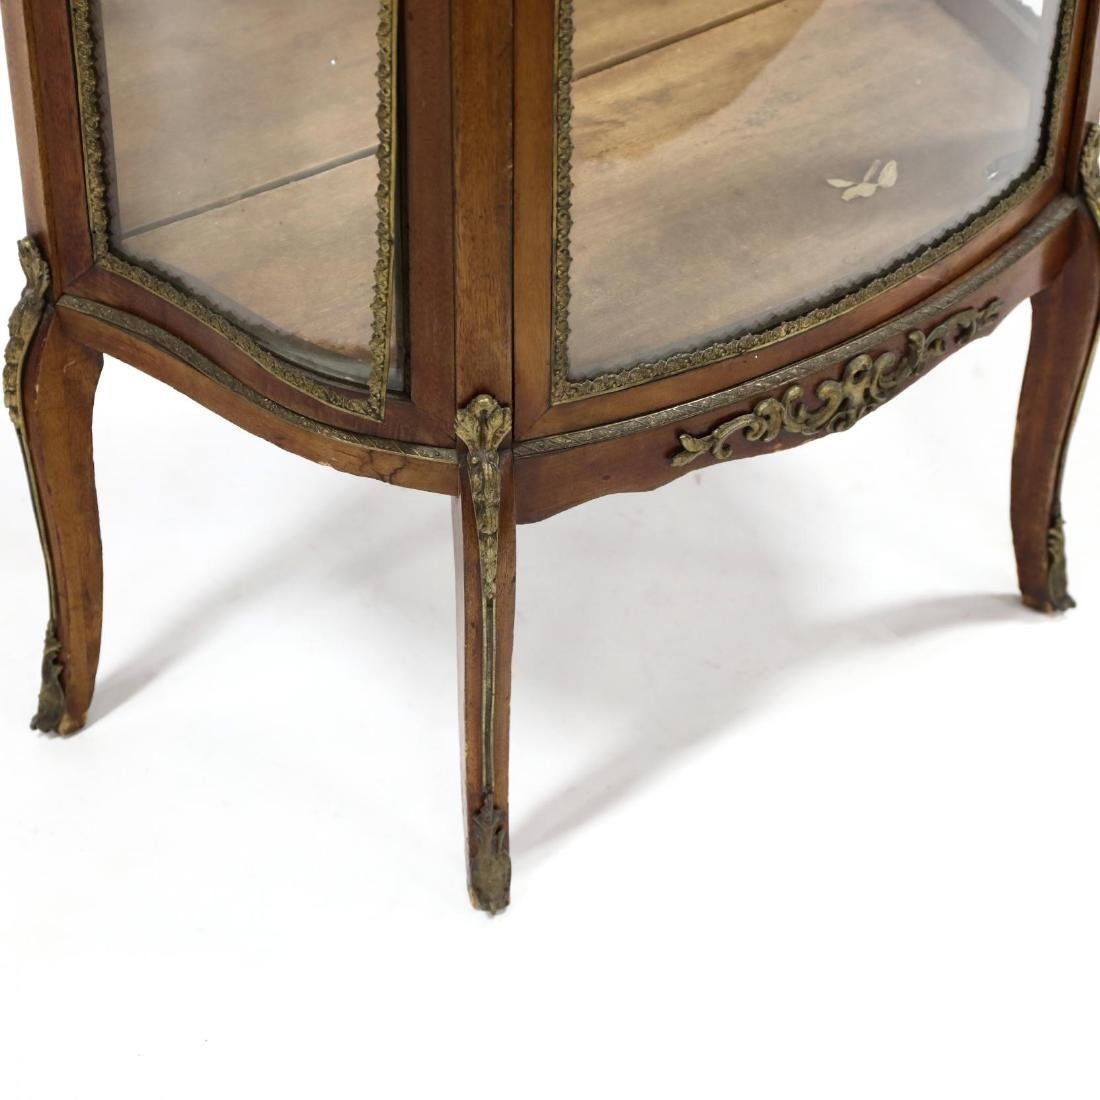 French Empire Style Marble Top Vitrine - 4